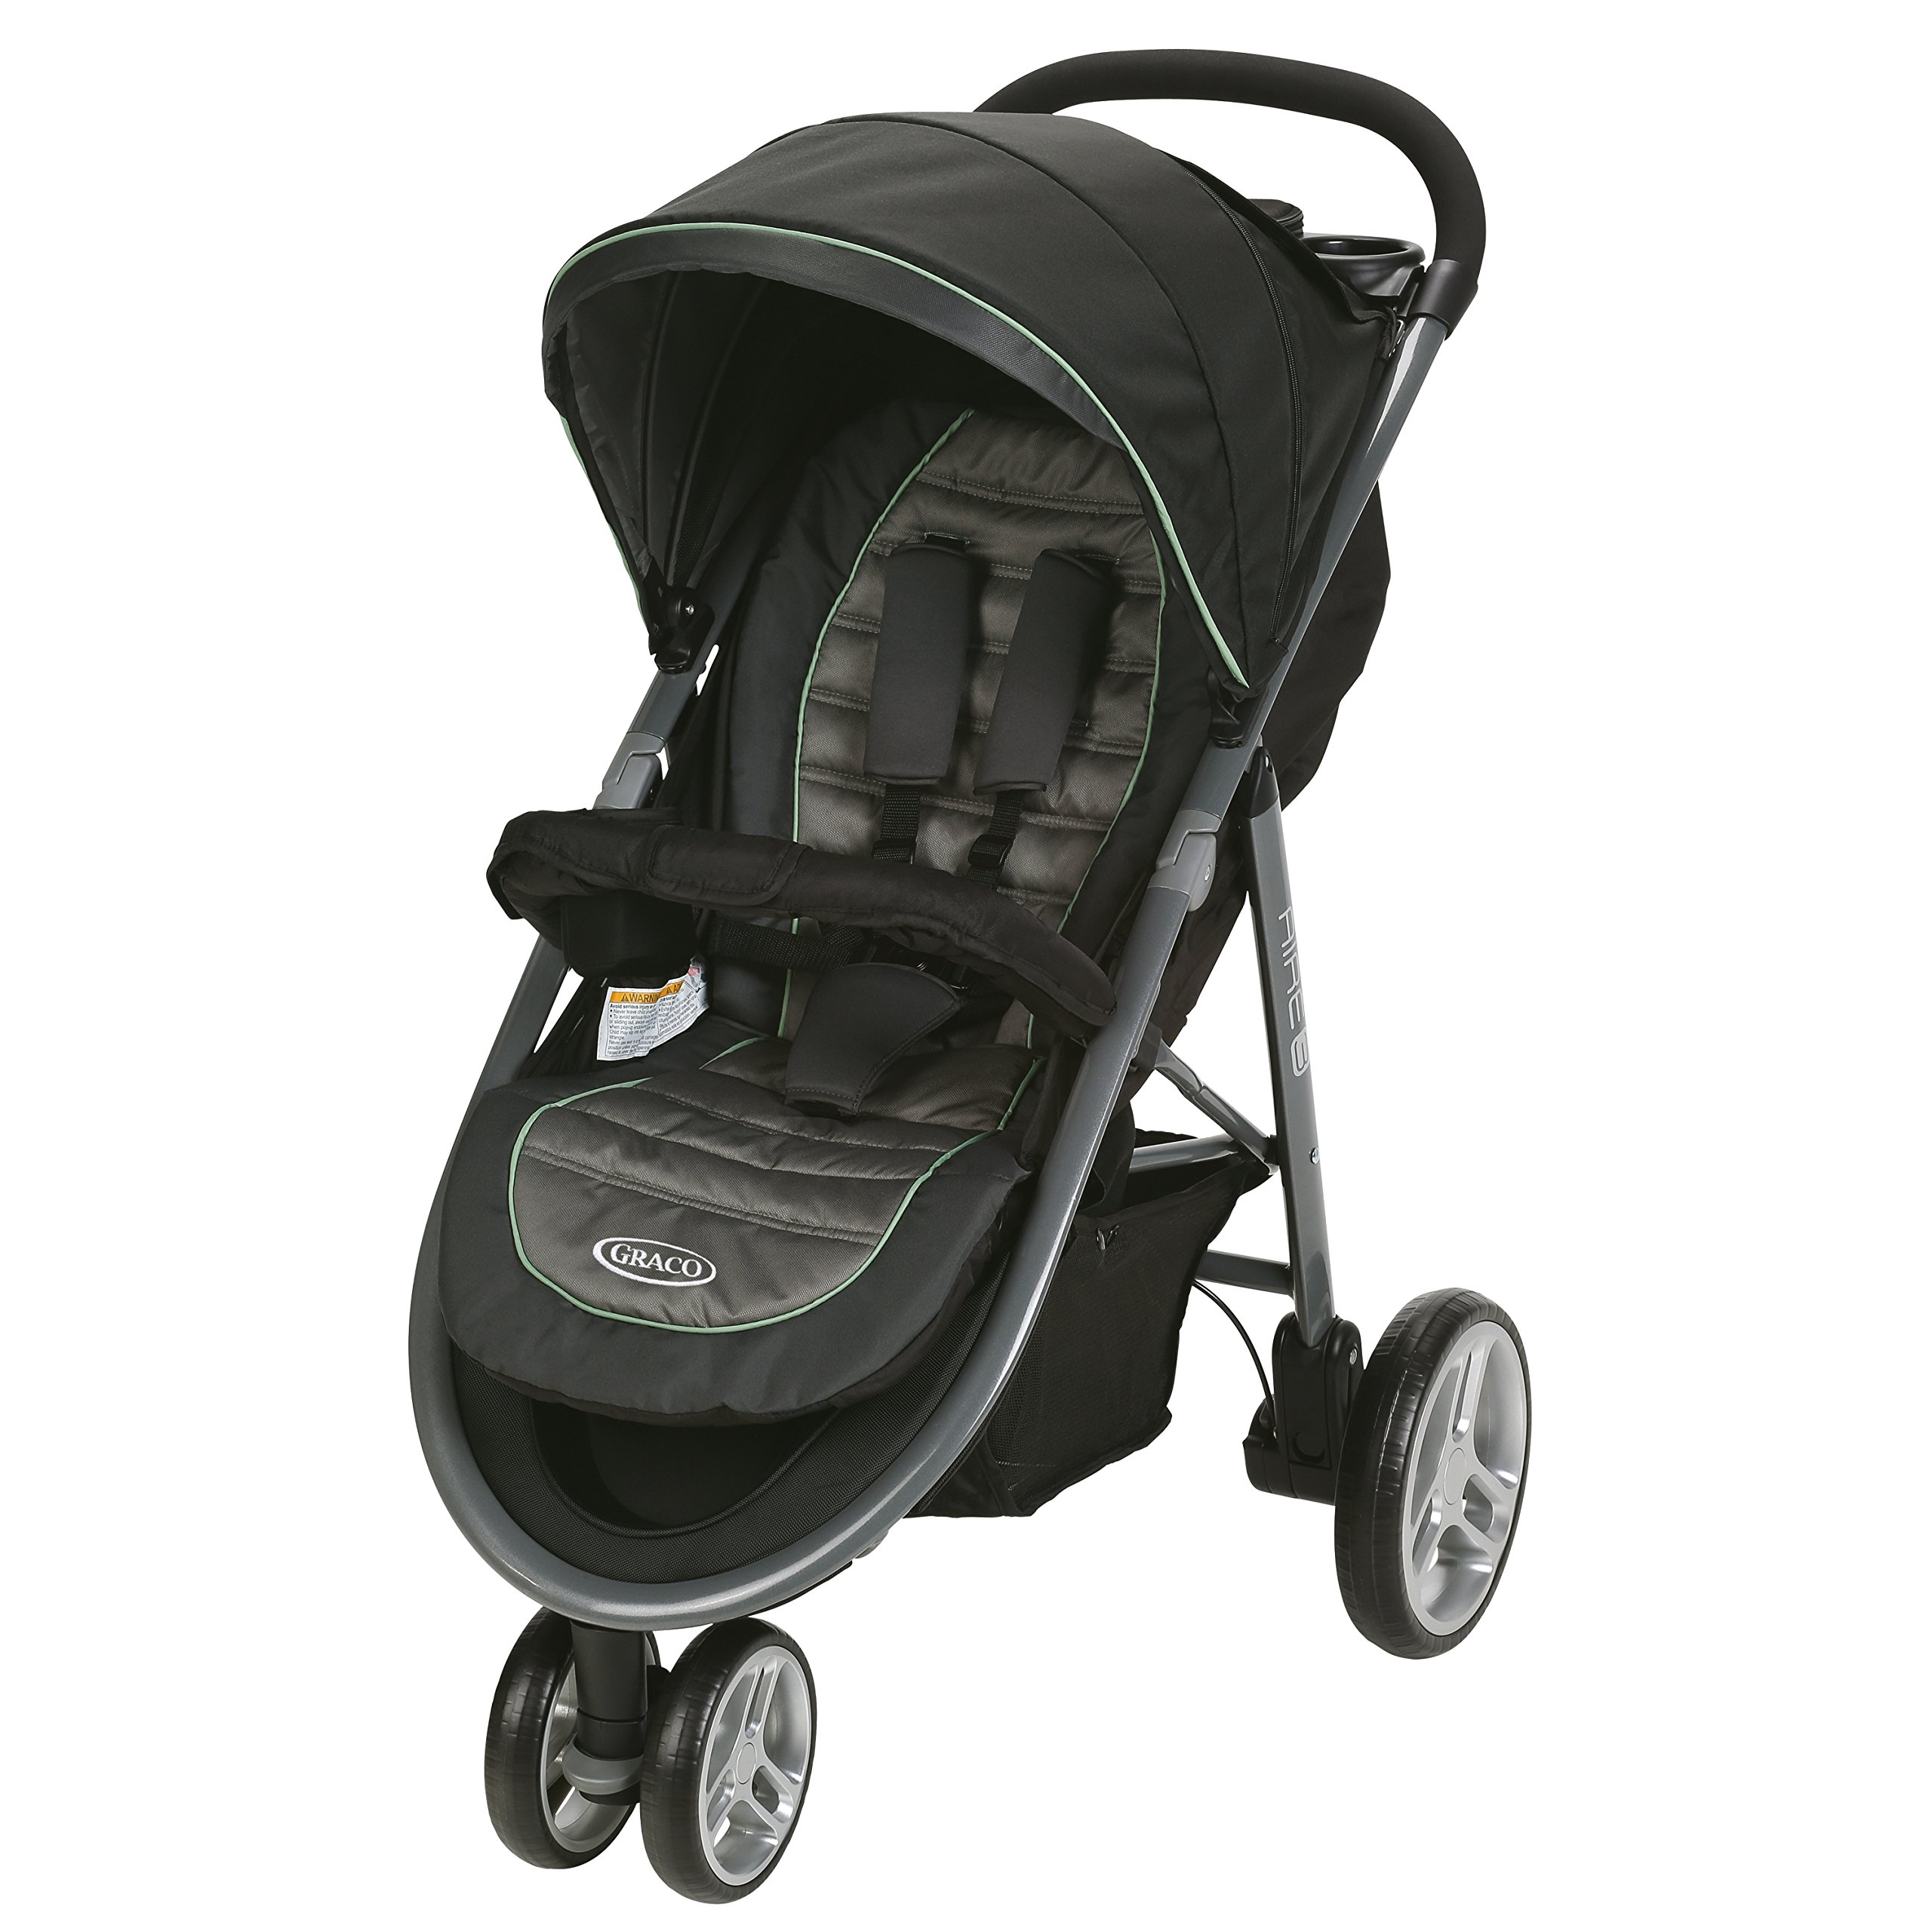 Graco Aire3 Click Connect Stroller, Ames